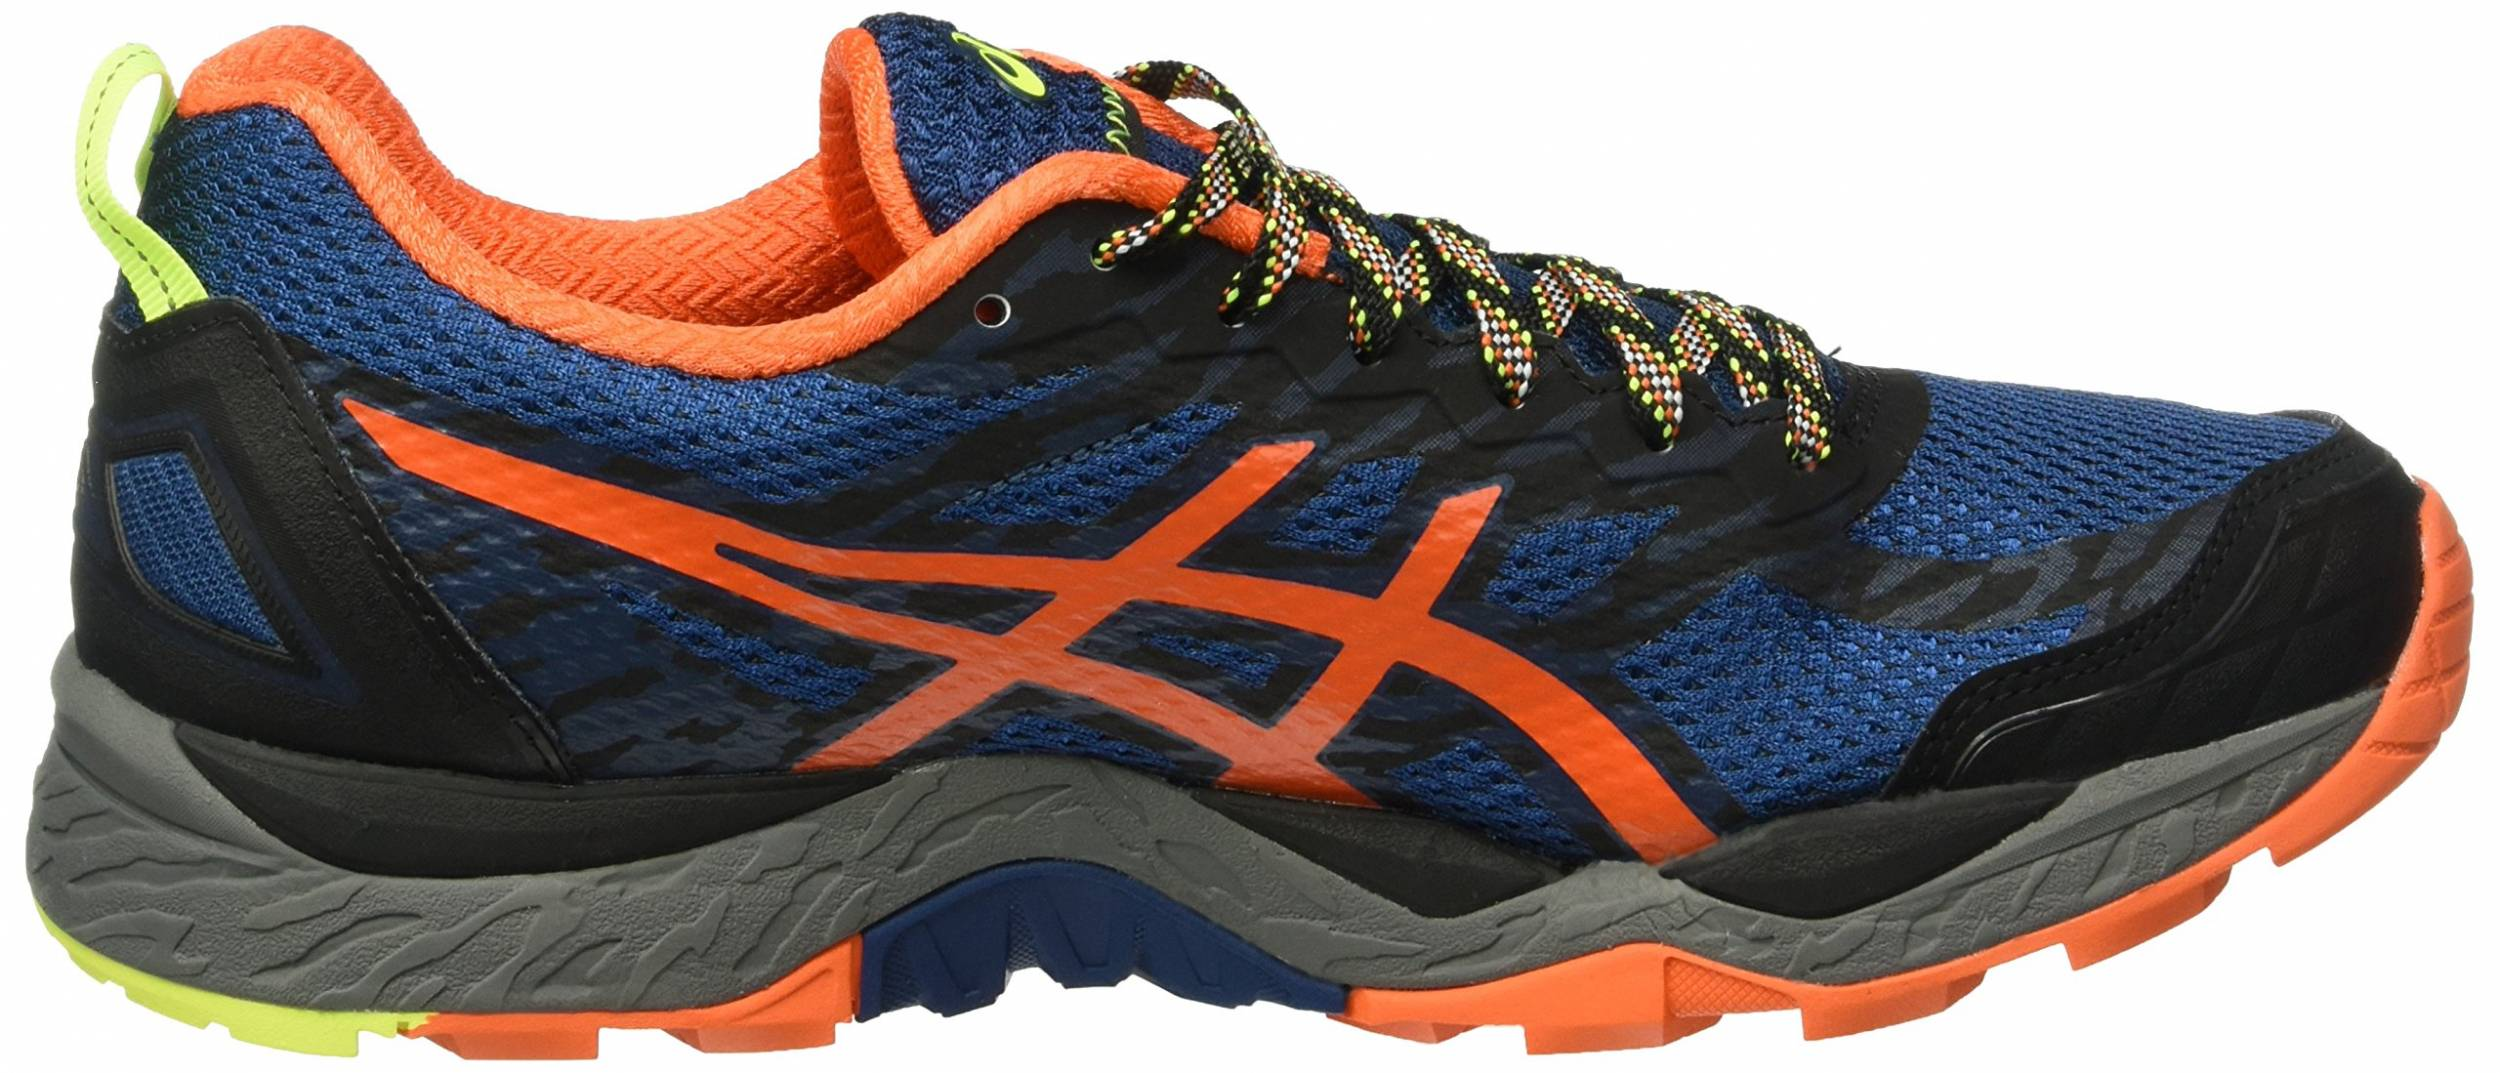 hostilidad lápiz elemento  10 Reasons to/NOT to Buy Asics Gel FujiTrabuco 5 (Oct 2020) | RunRepeat